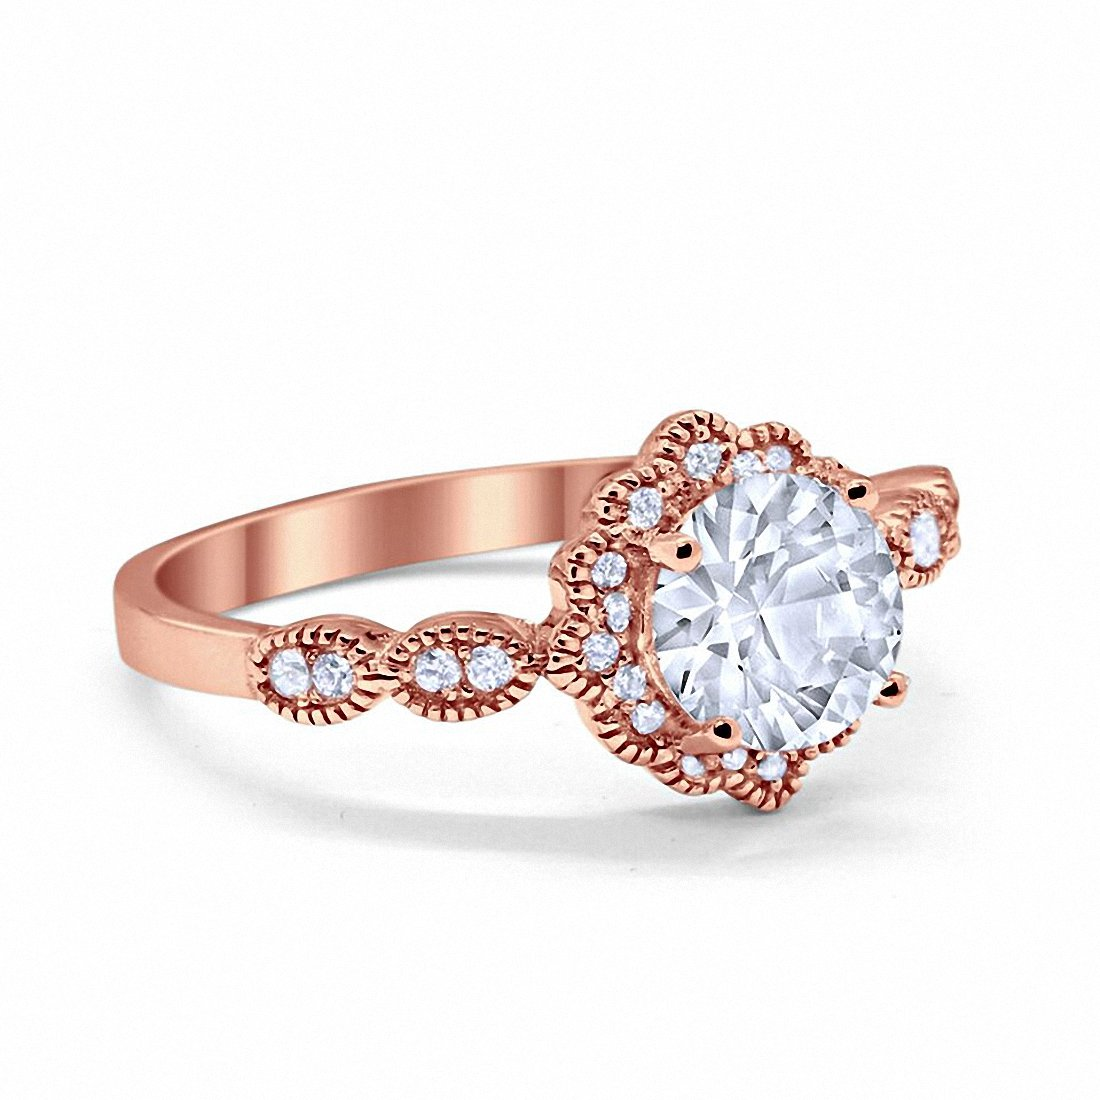 Floral Art Engagement Ring Round Rose Tone, Simulated CZ 925 Sterling Silver